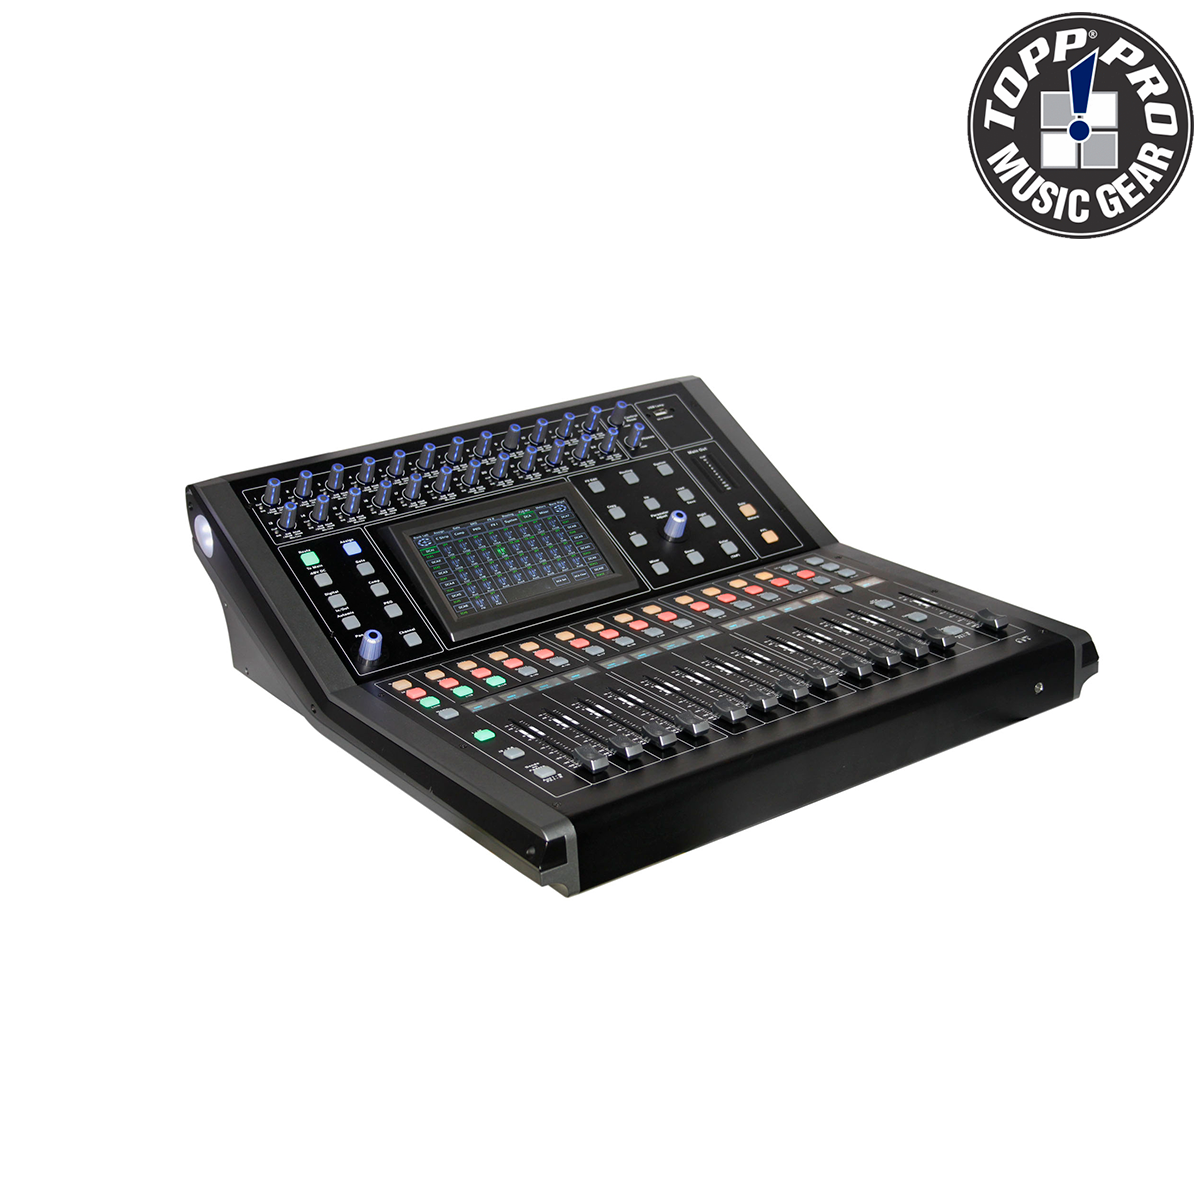 MIXER DIGITAL 24.8, 24CH MIC. 24 LINE INPUTS, 8 AUX, 7 PLG LCD TOUCH SCREEN, ETHERNET+USB MODULE BUIL-IN DM24.8